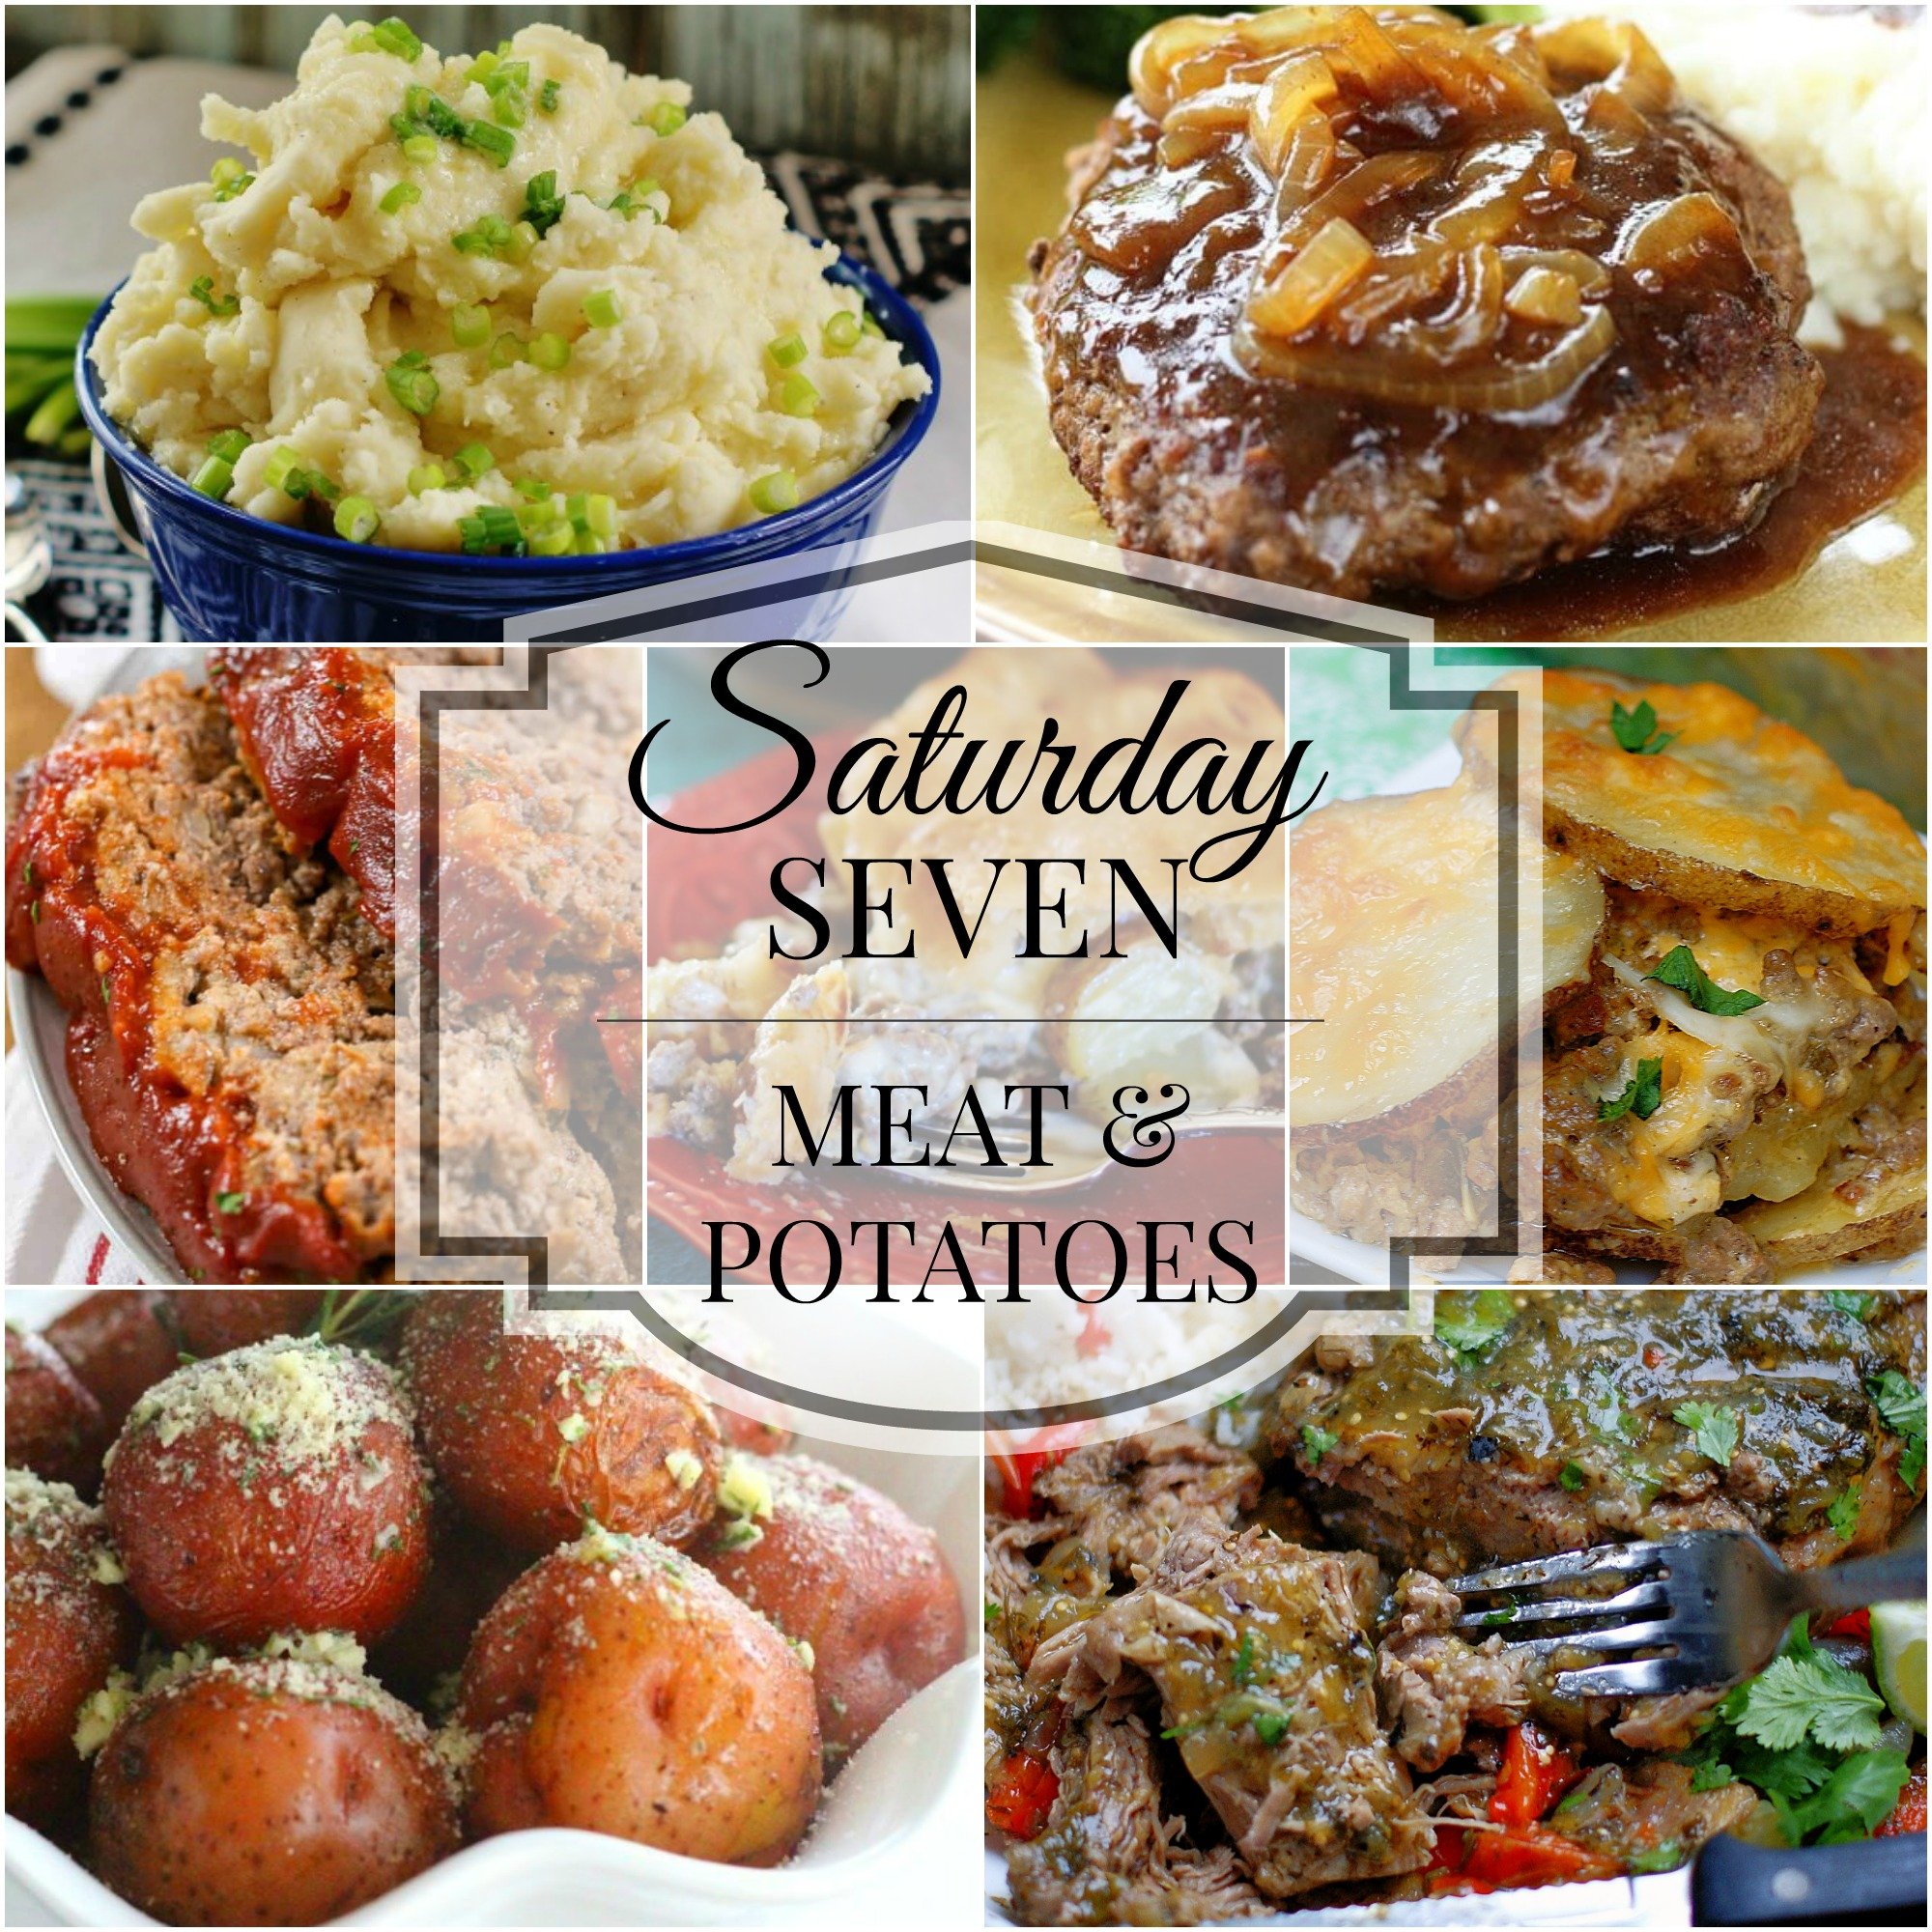 Saturday 7 Meat & potatoes classics title collage